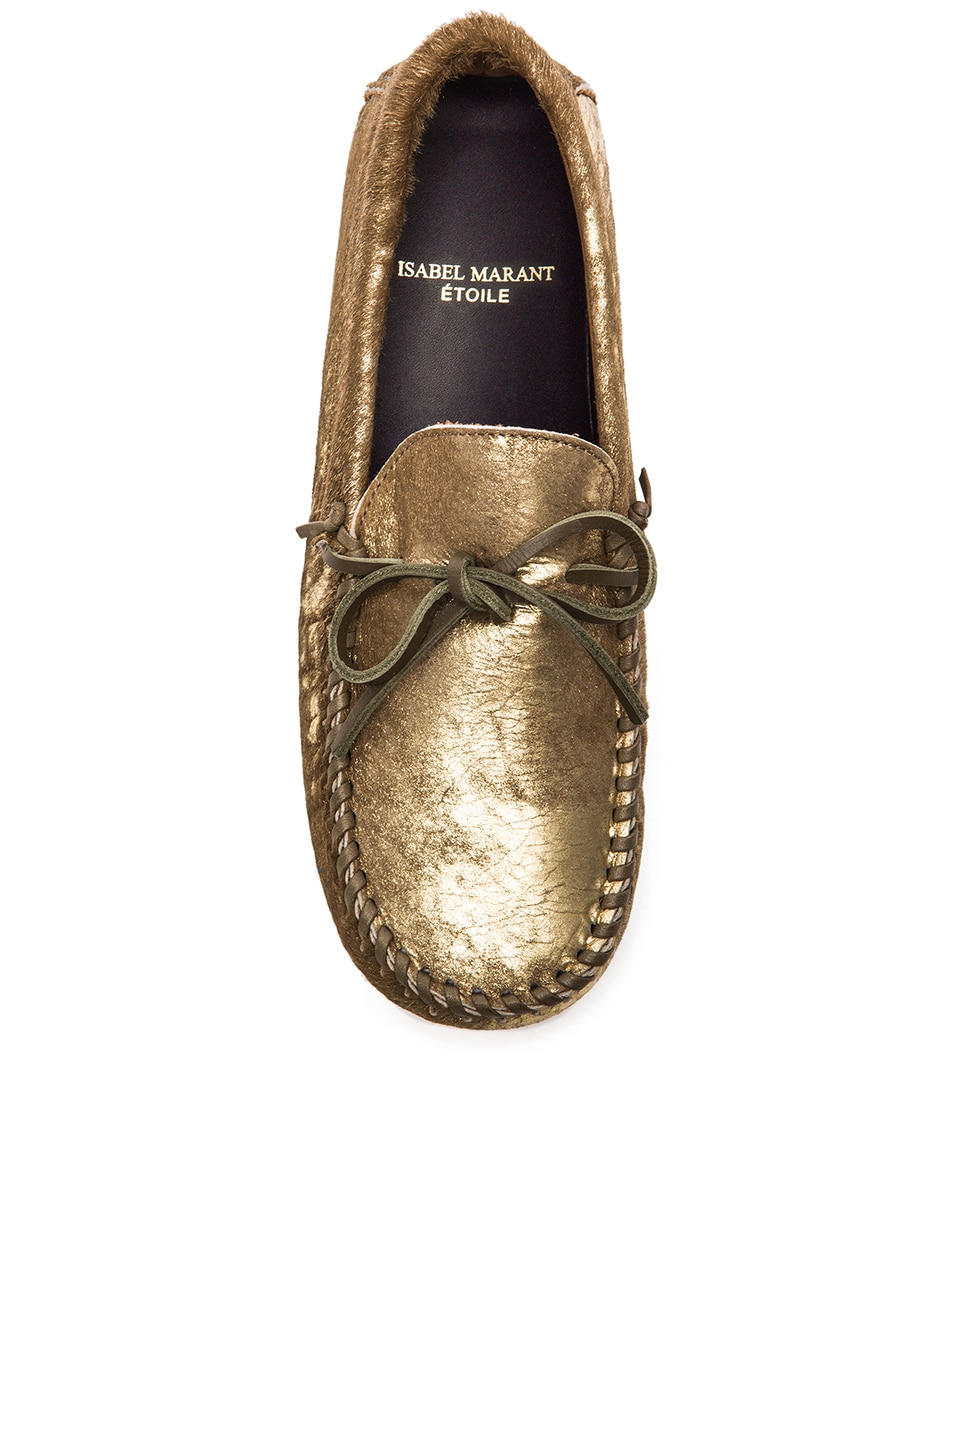 3610e87c871 Image 4 of Isabel Marant Etoile Fodih Calf Hair Moccasins in Dore